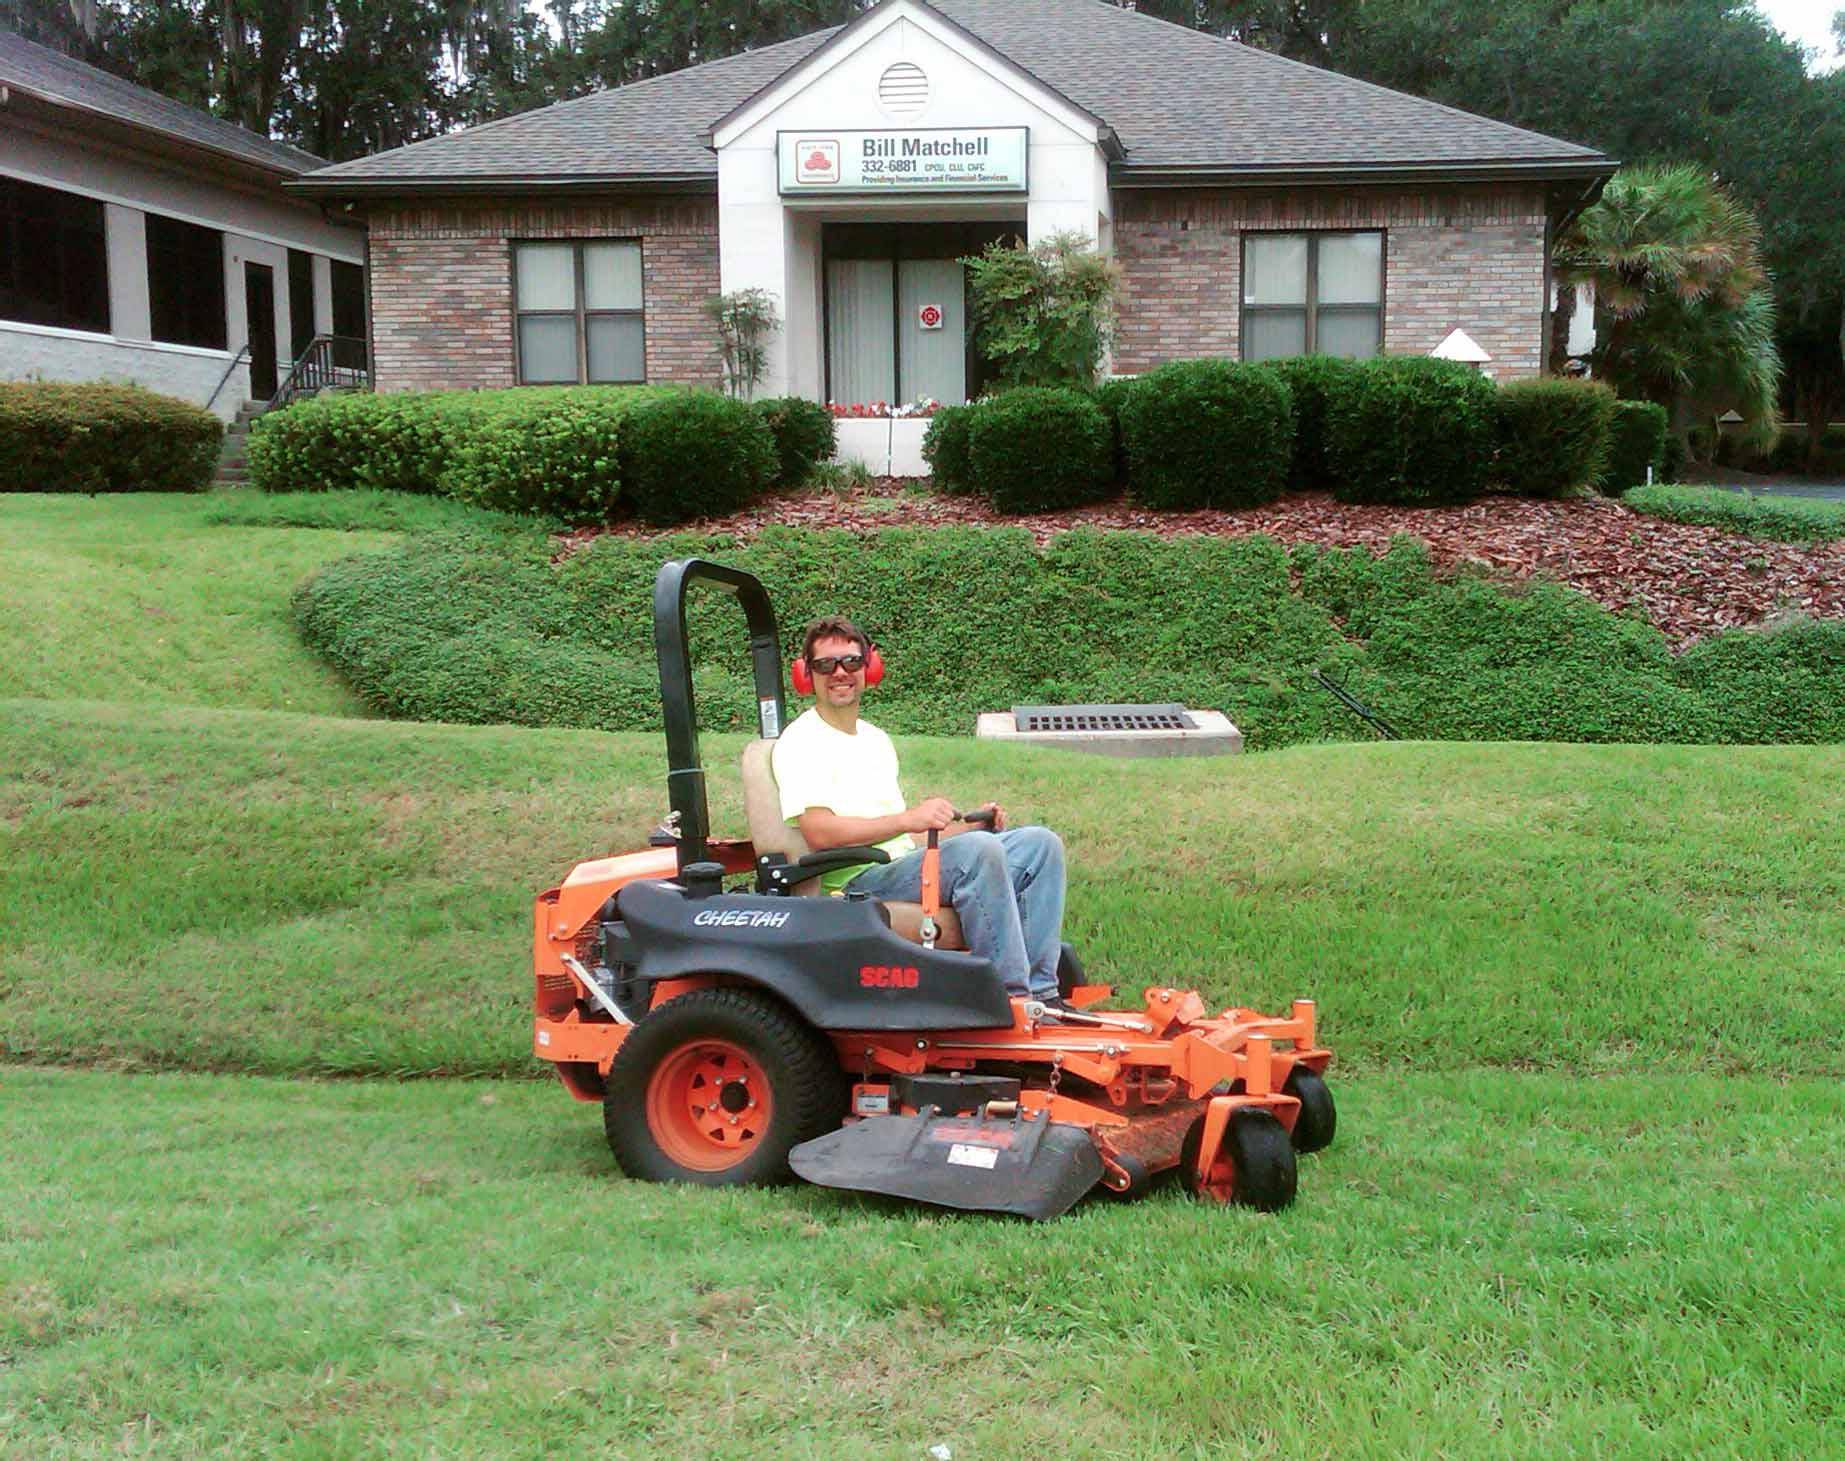 Lawn Care Gainesville Fl Mowing, Pruning, Mulching  Lawn. Texas A&m Corpus Christi Nursing. San Diego Online College Rent A Mailing List. Architecture Bachelor Degree Online. Animal Research Project Nyc Employment Lawyer. Security System Los Angeles Global Green Inc. Contract Management Companies. Asu Cost Per Credit Hour 2011 Chevy Camaro Lt. Pittsburgh Paralegal Jobs Utility Credit Card